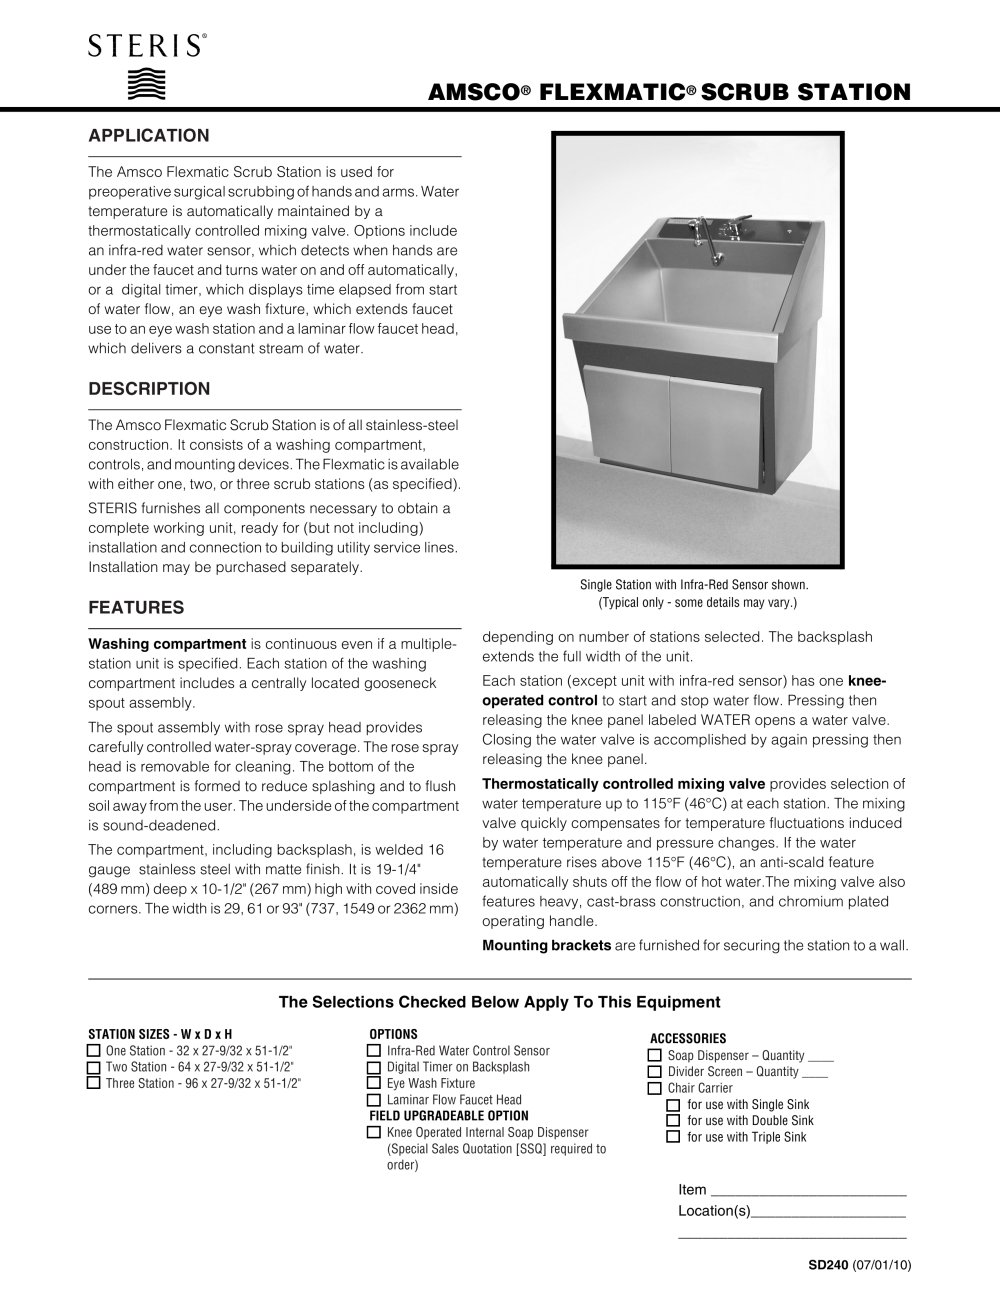 AMSCO FLEXMATIC SCRUB STATION - 1 / 4 Pages